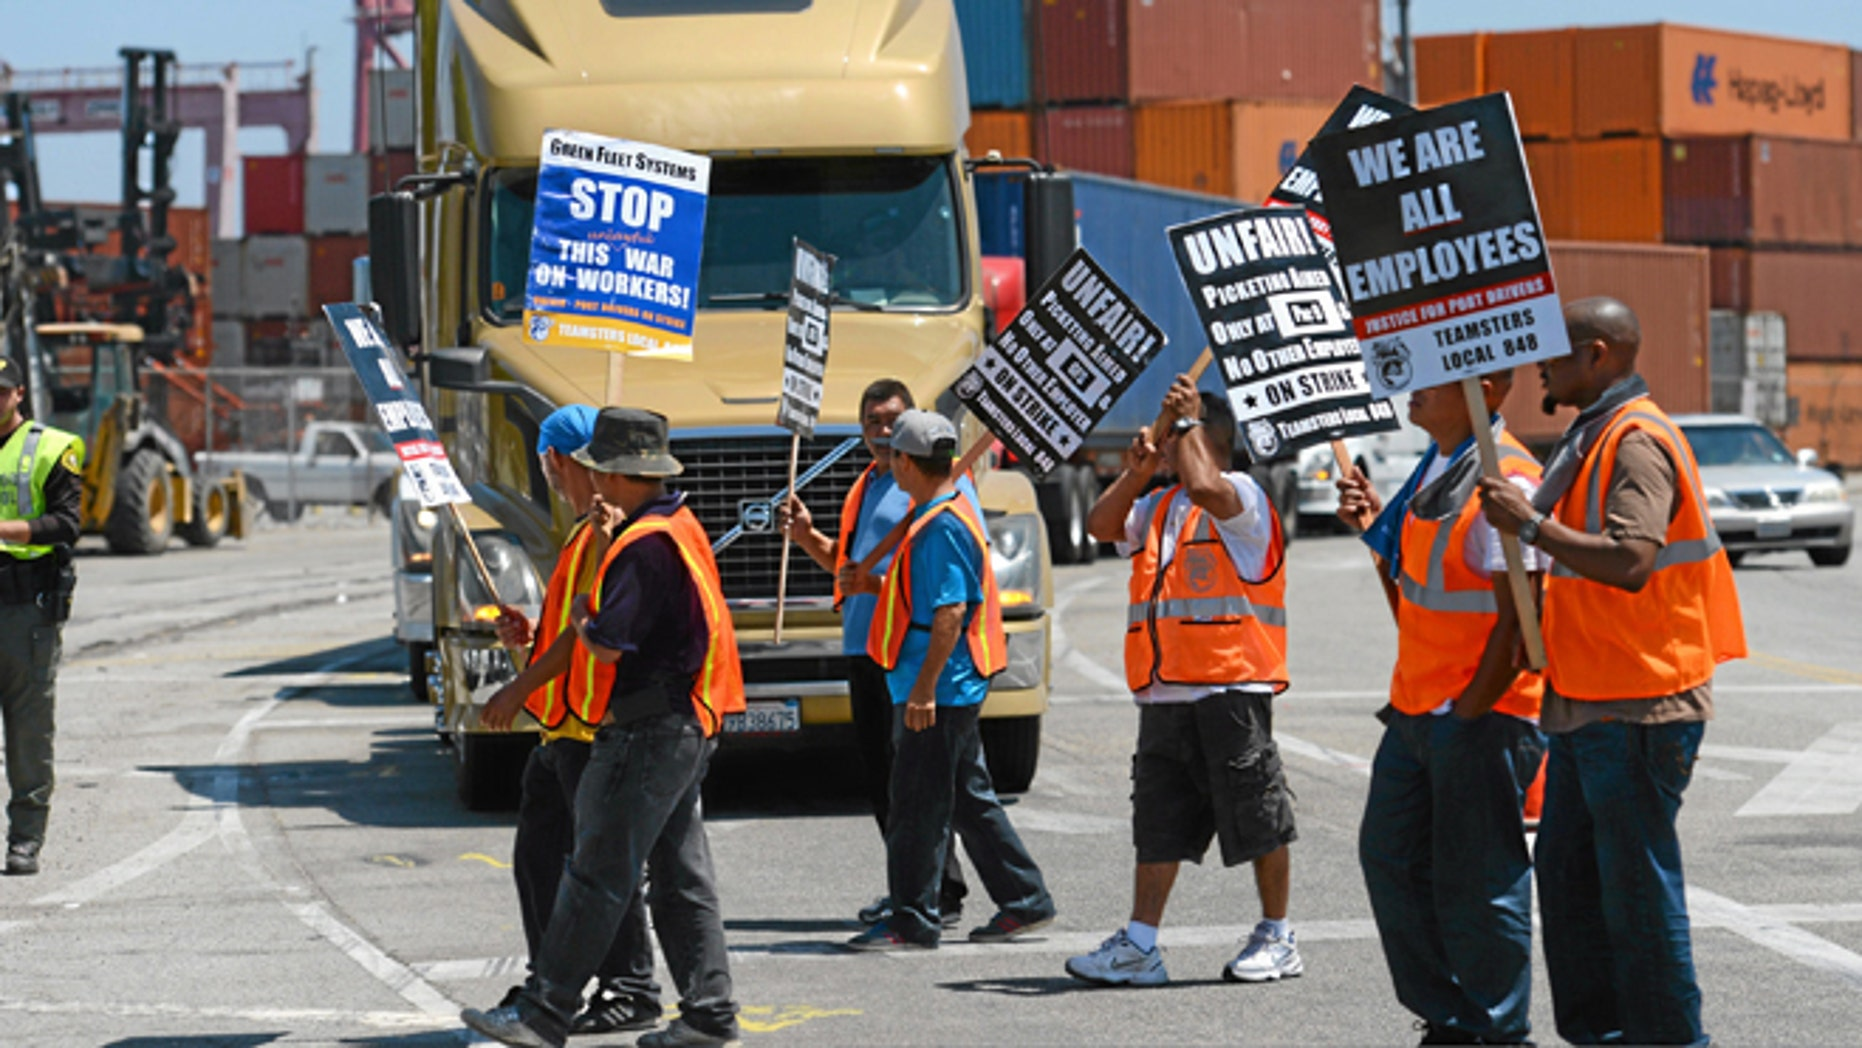 This July 8, 2014 file photo shows members of the Teamsters Union picketing at the Port of Long Beach, Calif.